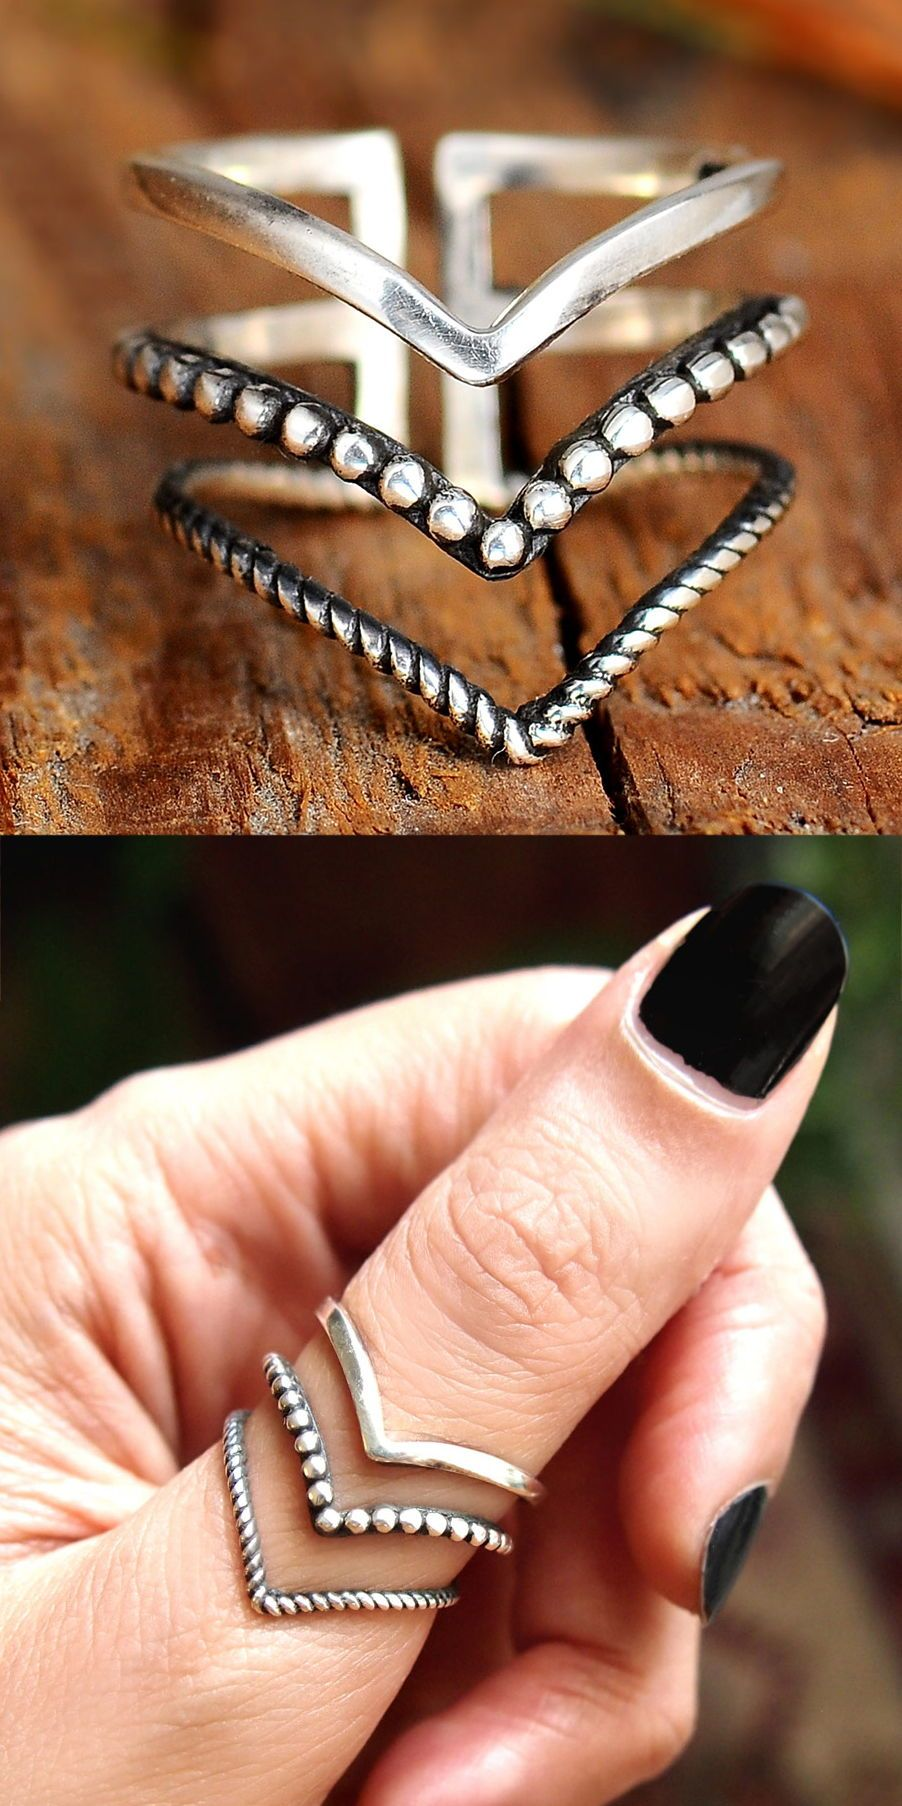 chevron ring Thumb rings adjustable ring long ring sterling silver rings for women boho rings bohemian jewelry geometric jewelry triangle ring handmade silver jewelry bea...